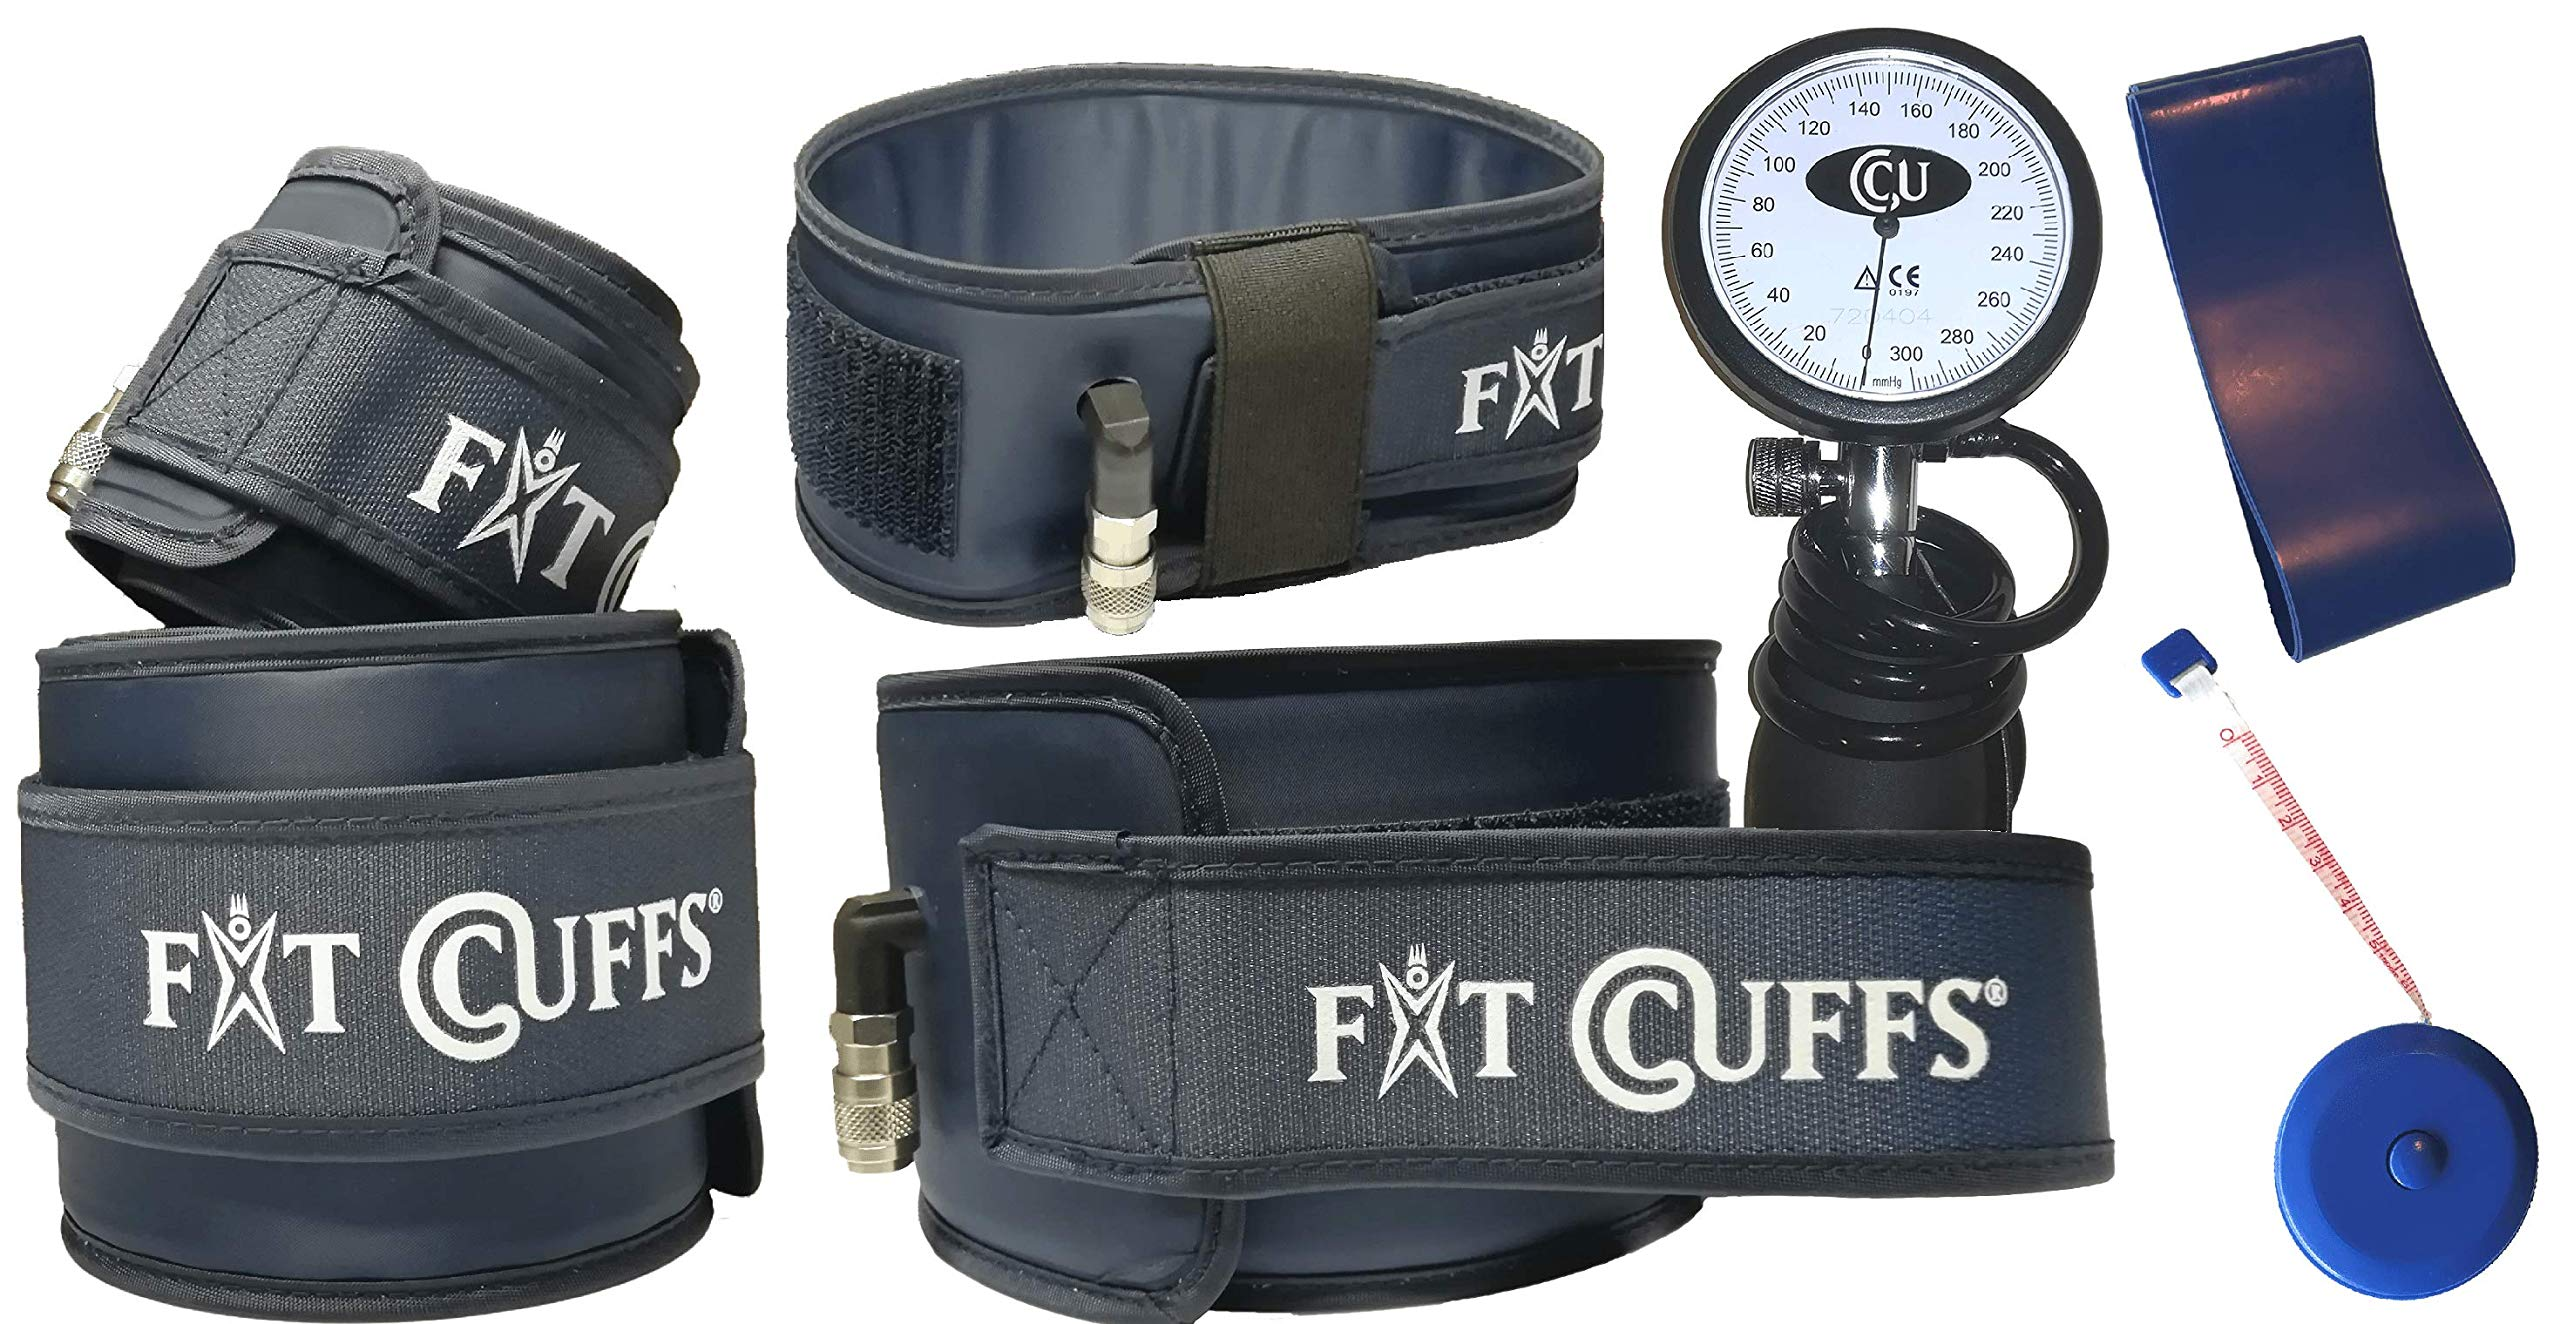 Fit Cuffs (One Size Fits All)